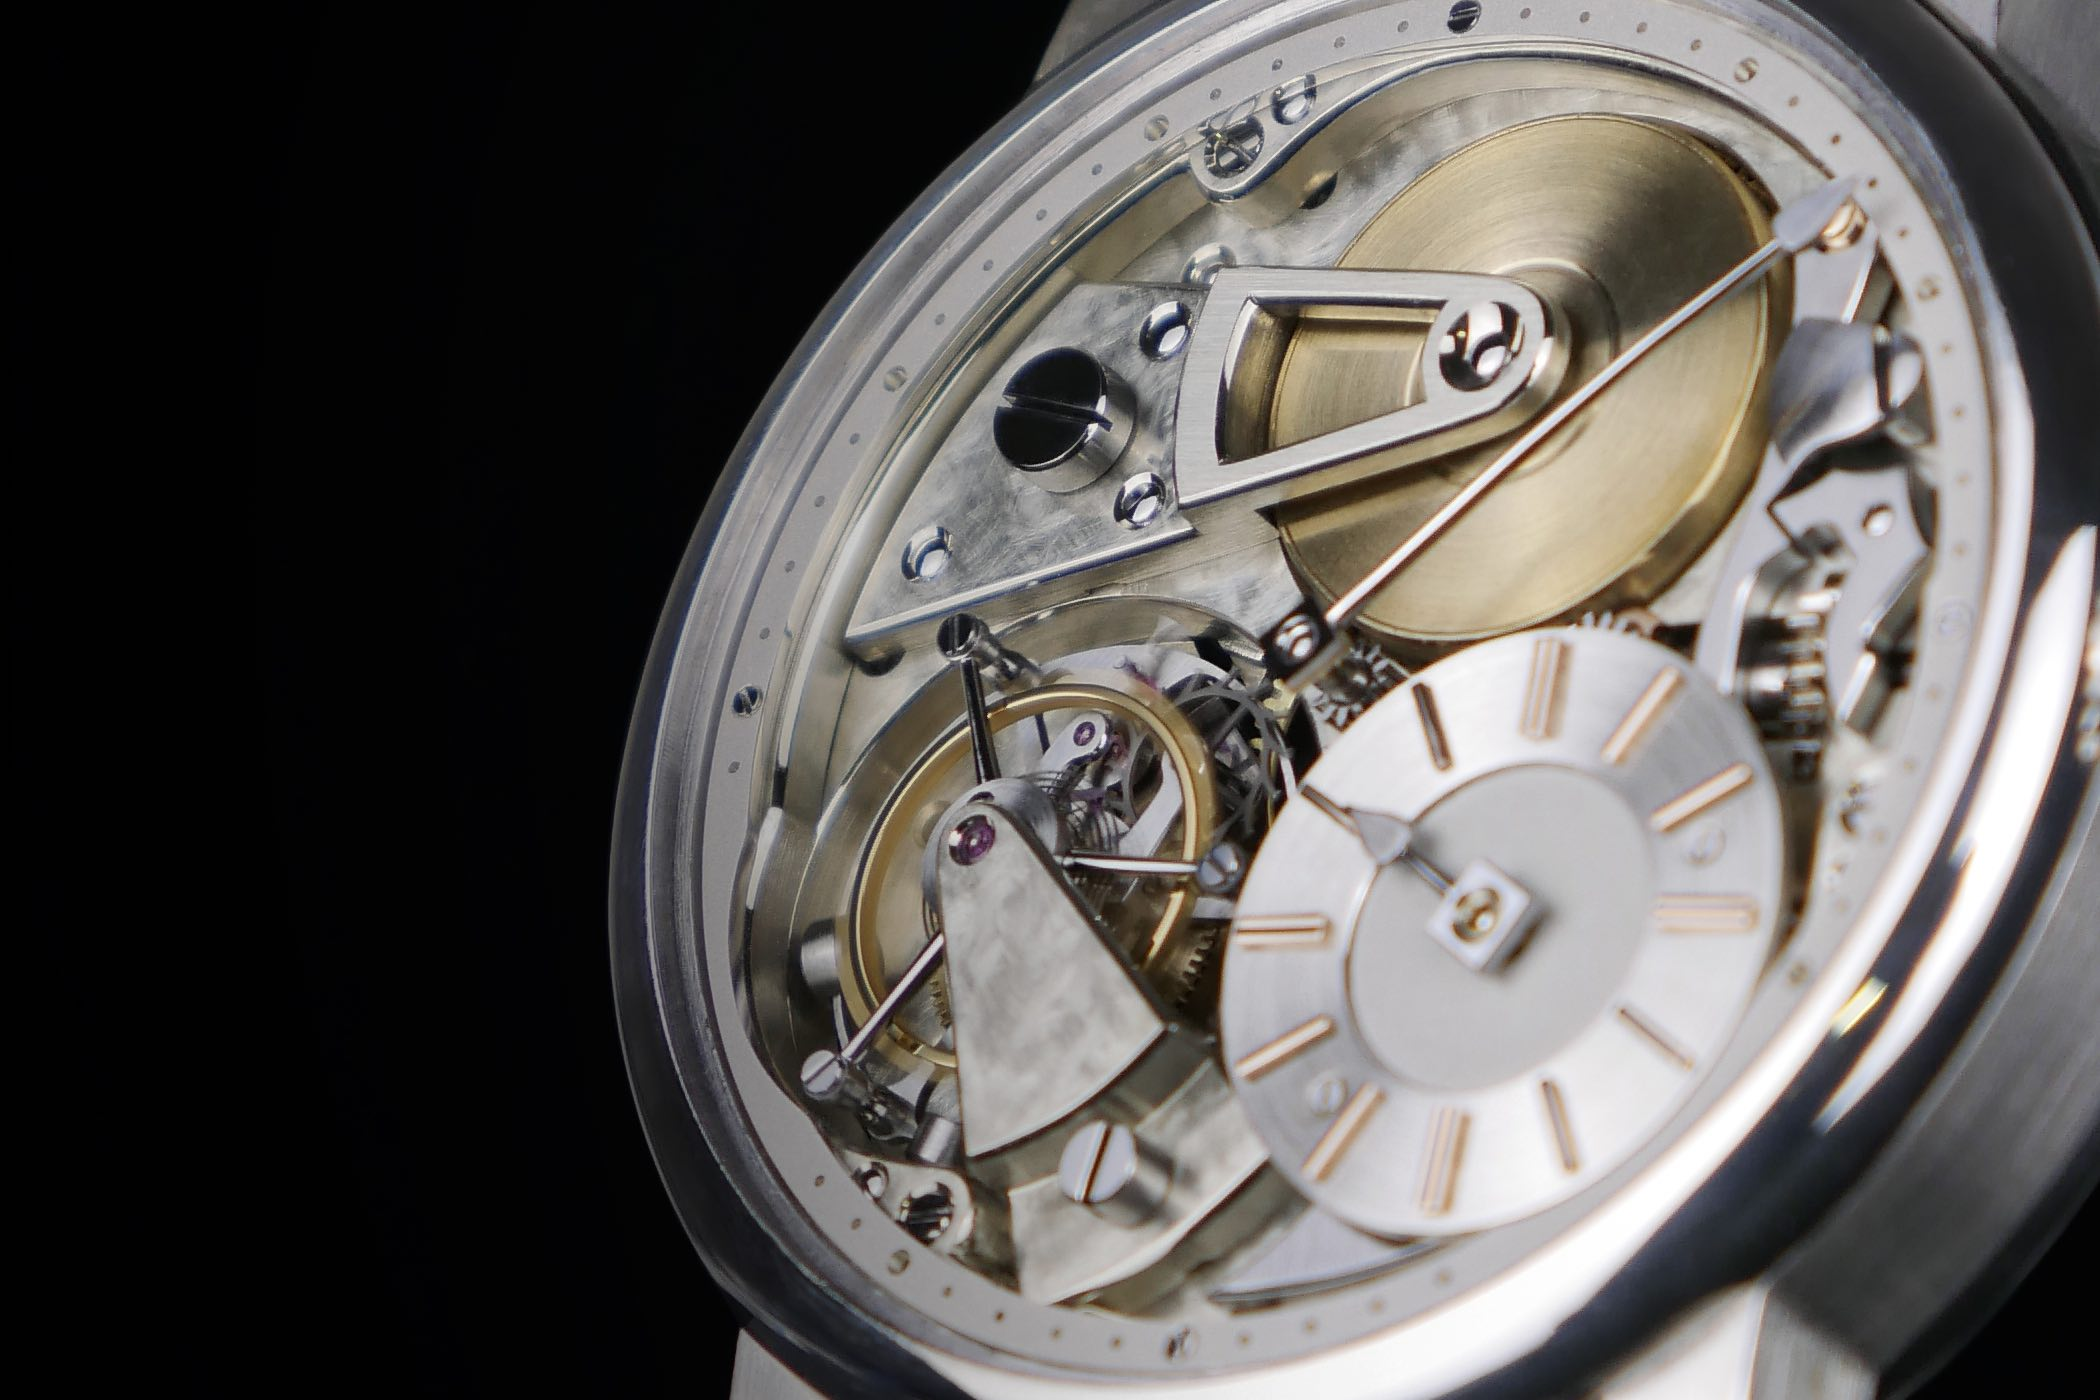 theo auffret tourbillon in paris